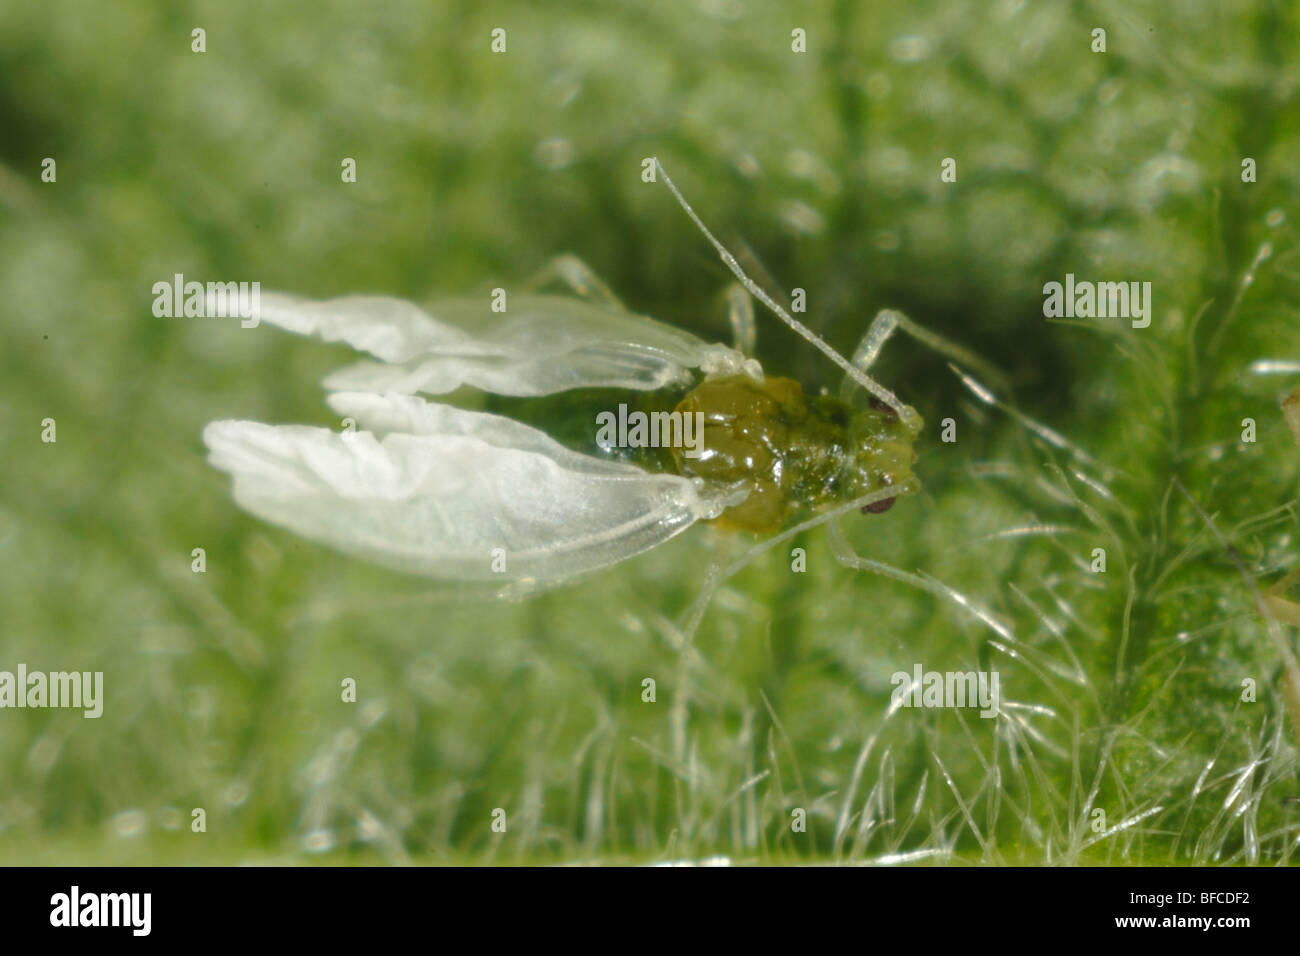 Cotton aphid (Aphis gossypii) alate after exdiasis with expanding wings on a blackberry leaf - Stock Image